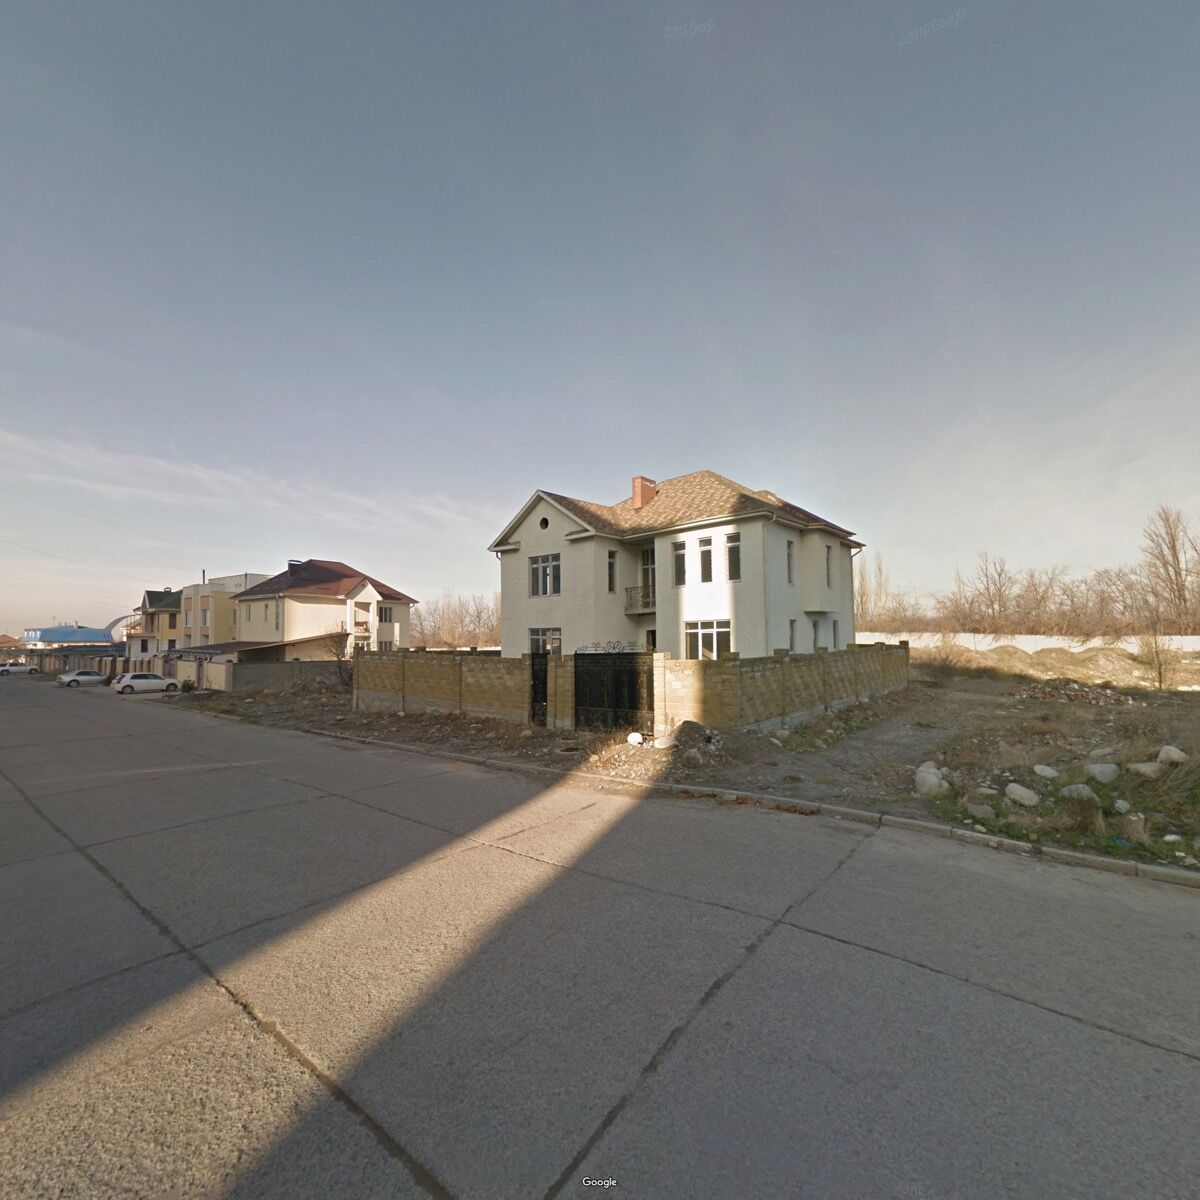 Bishkek, Chuy Province, Kyrgyzstan. Photograph by Jacqui Kenny via Google Street View.